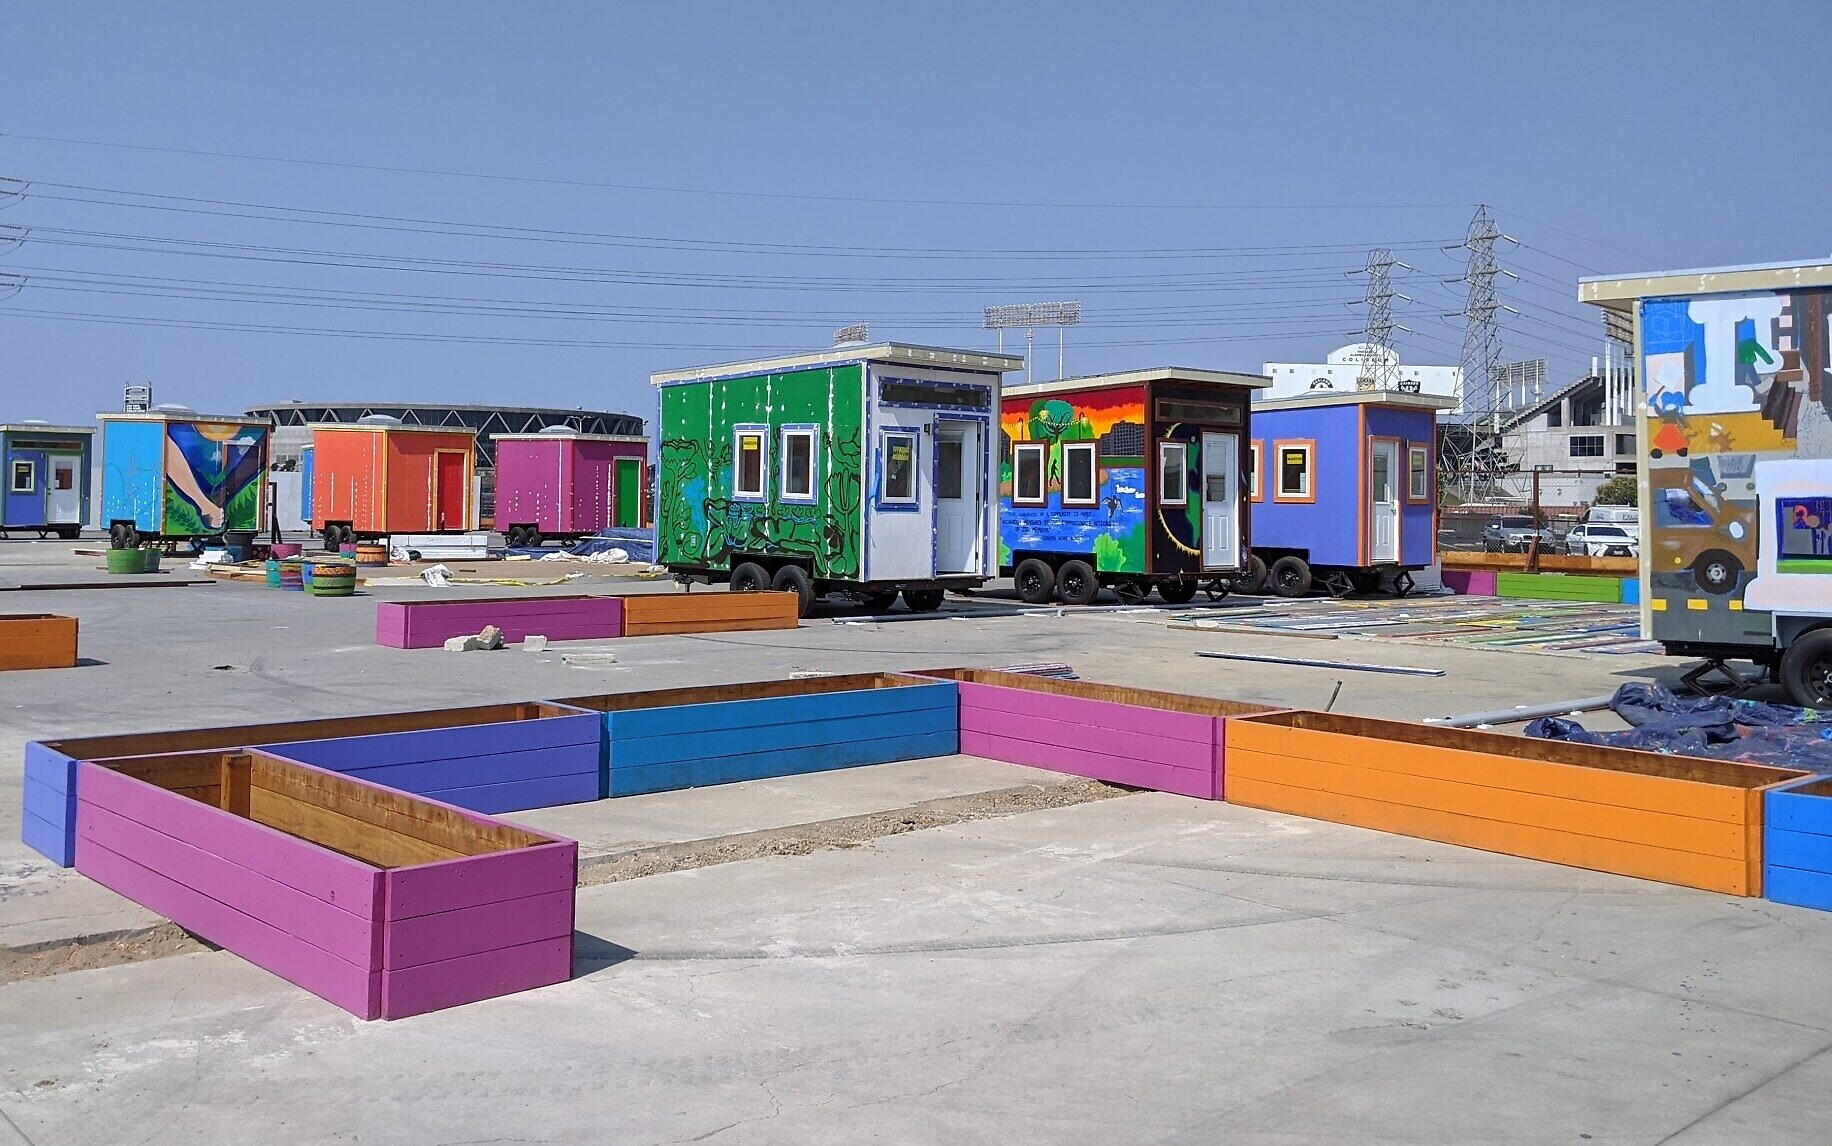 The 26 houses are organized into four quads to create small neighborhoods within the Tiny House Village in Oakland, California, pictured here on September 20, 2020. (courtesy)